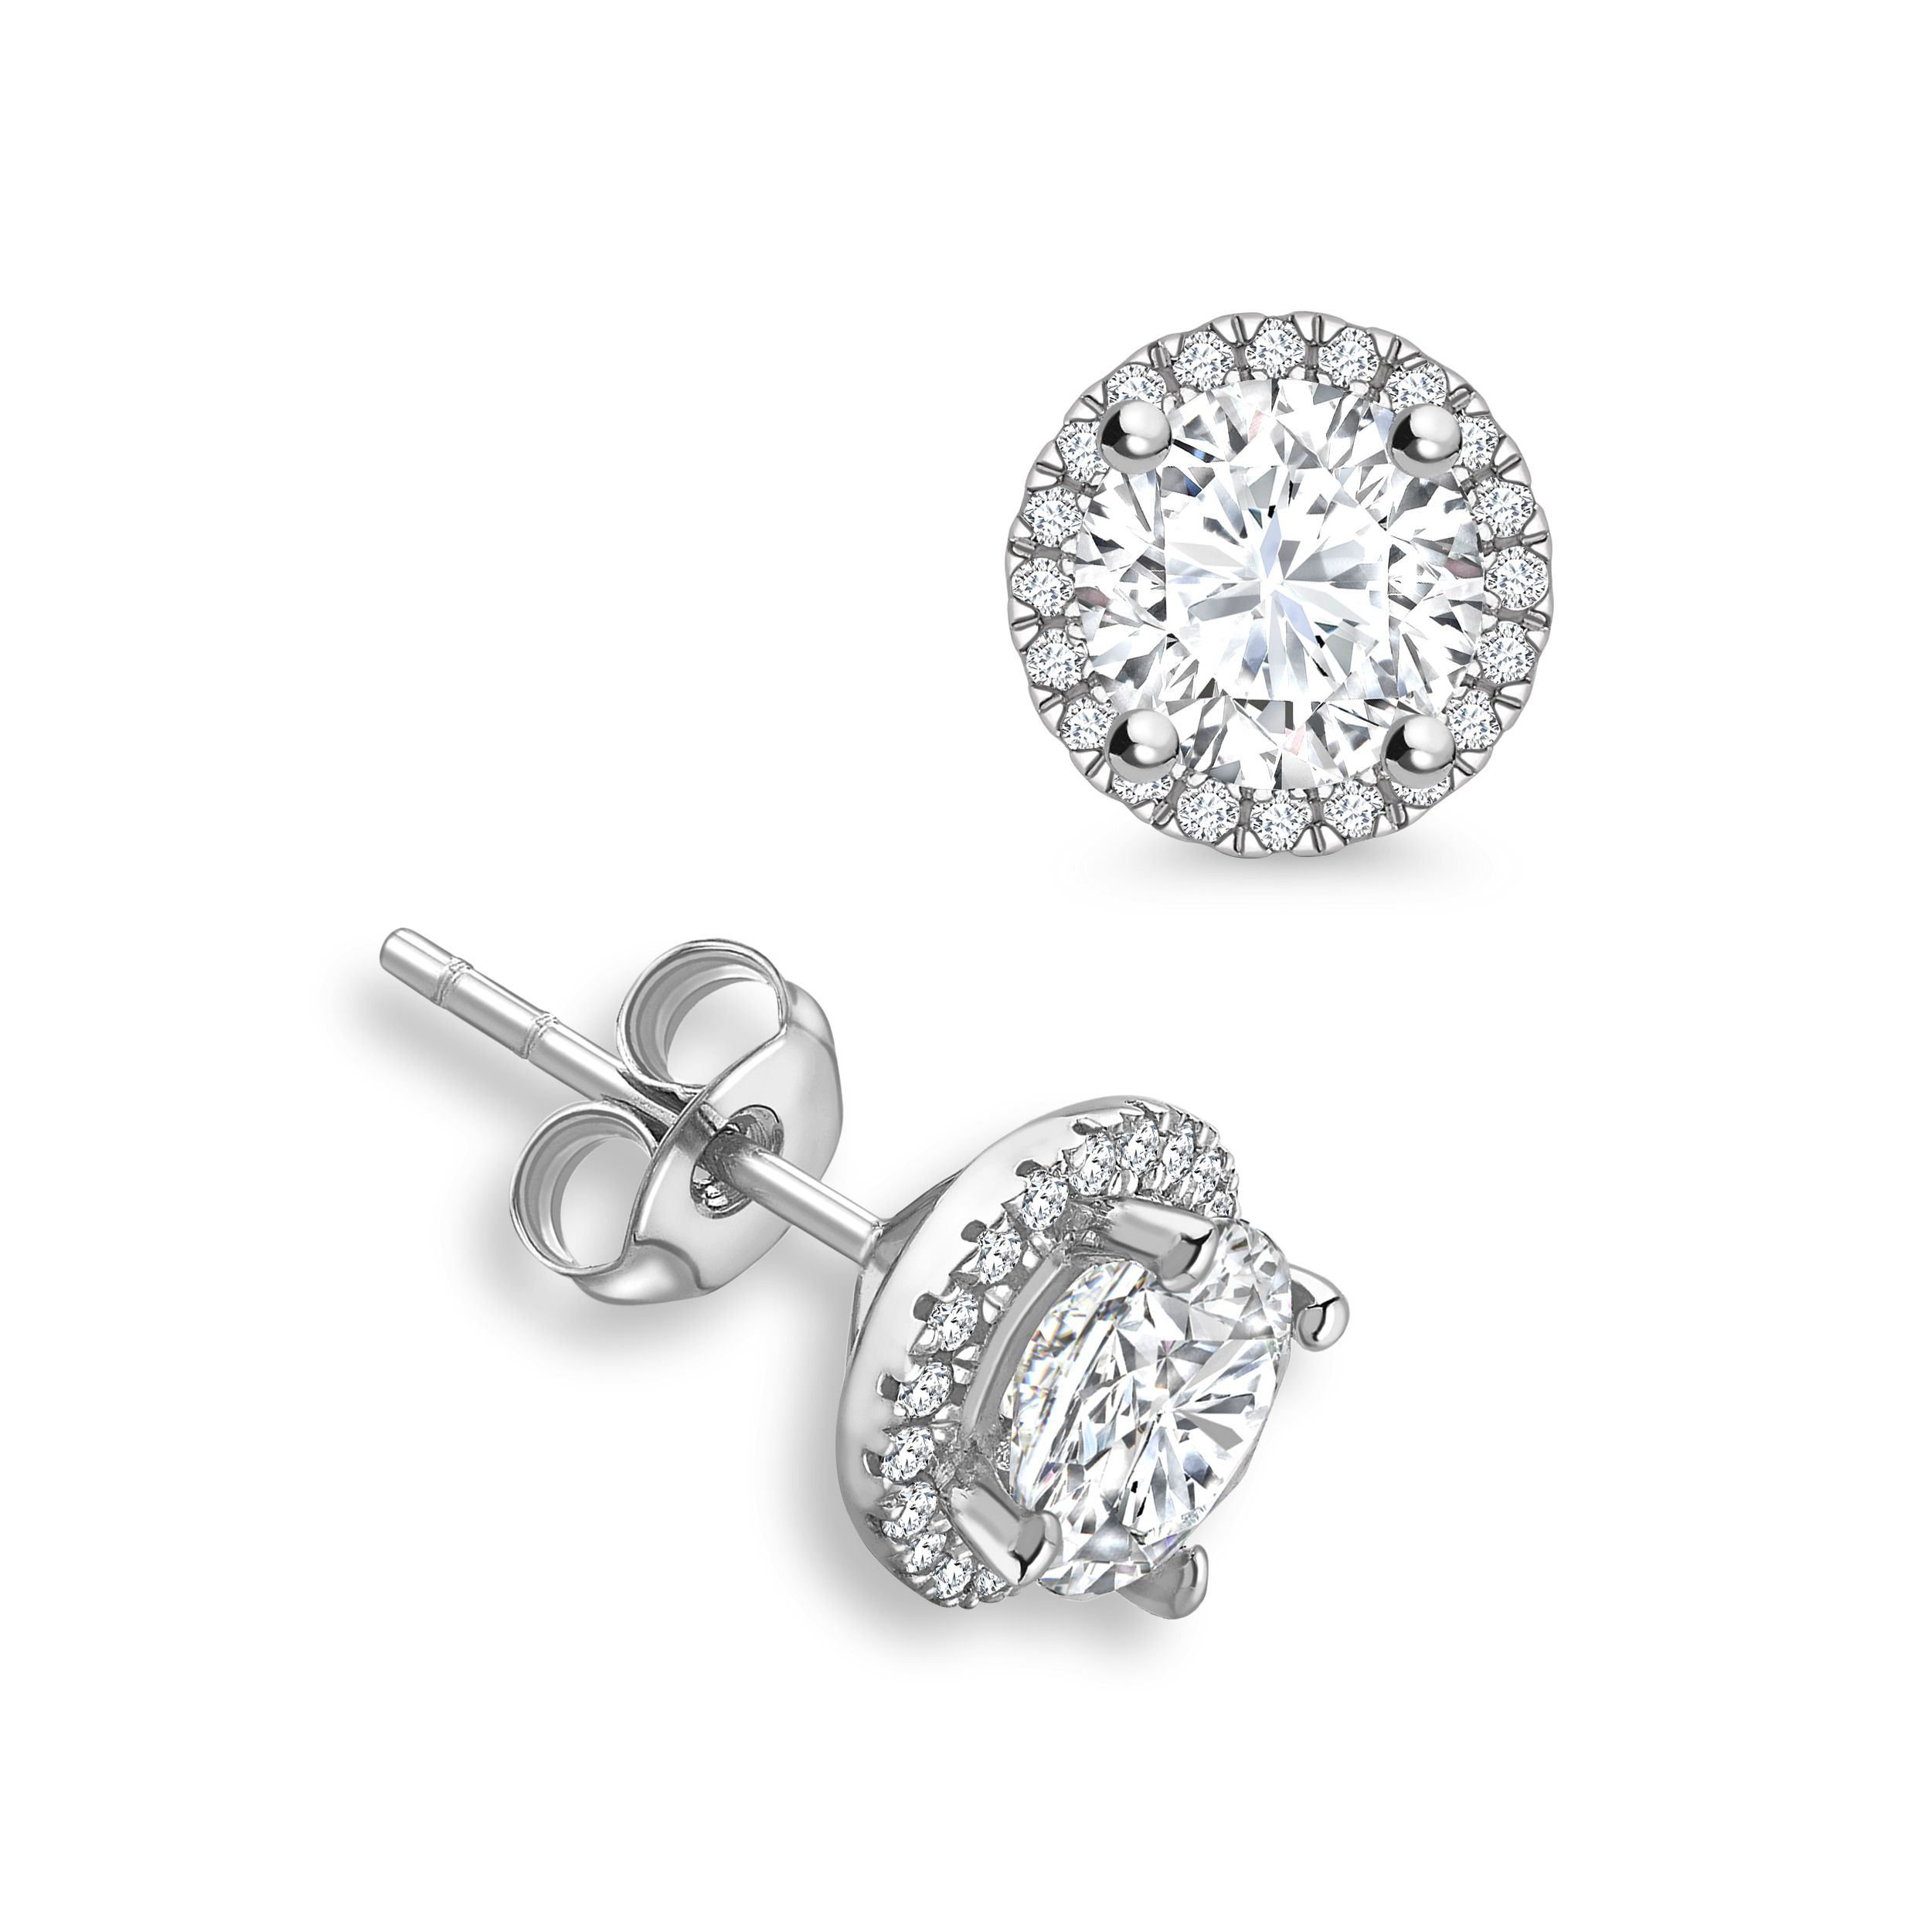 Round Diamond Halo Diamond Earrings Available in Rose, Yellow, White Gold and Platinum